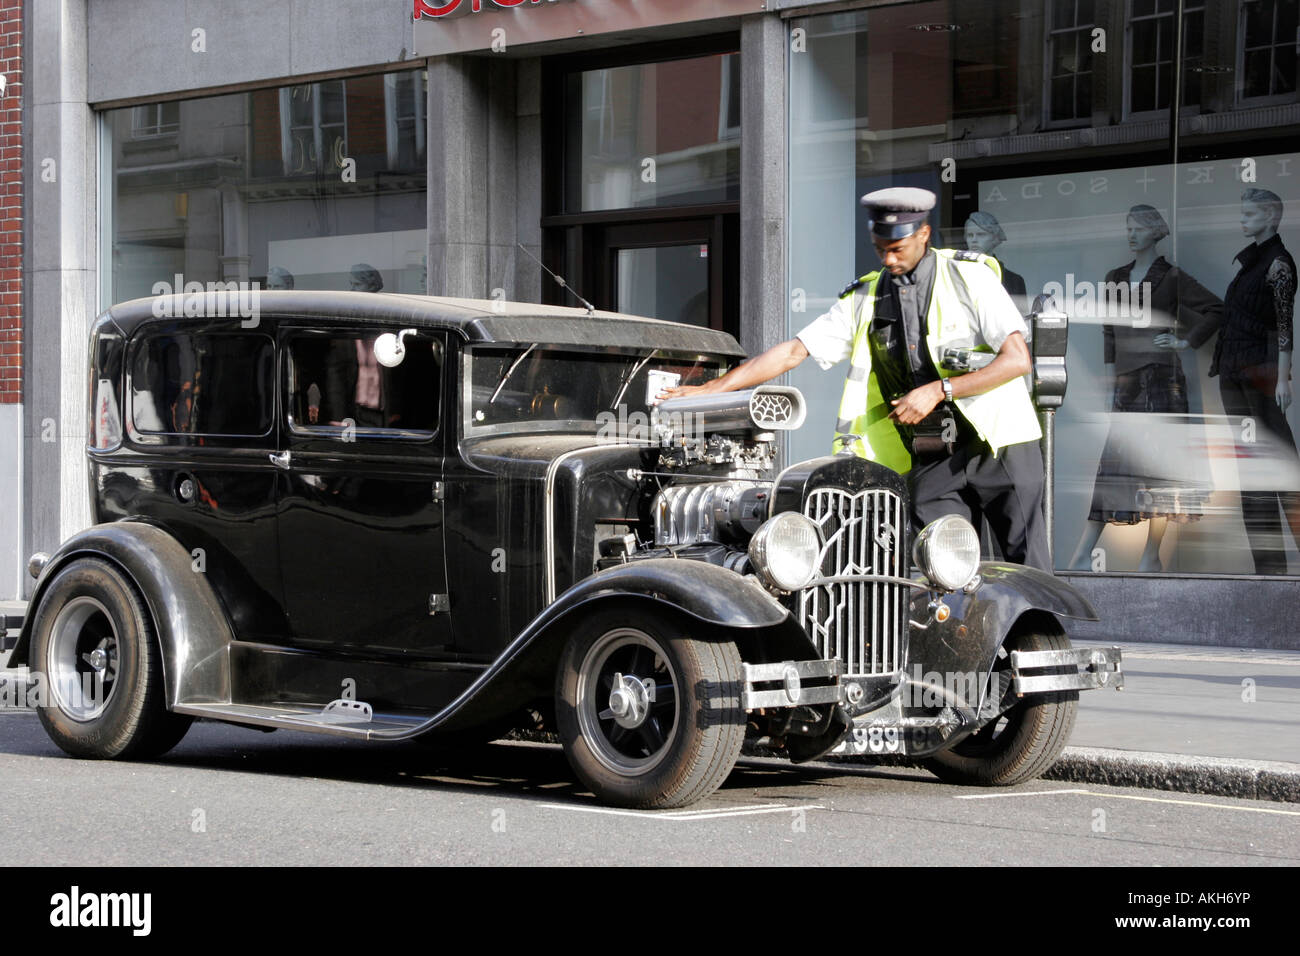 Traffic warden giving a custom car a parking ticket in Central London - Stock Image